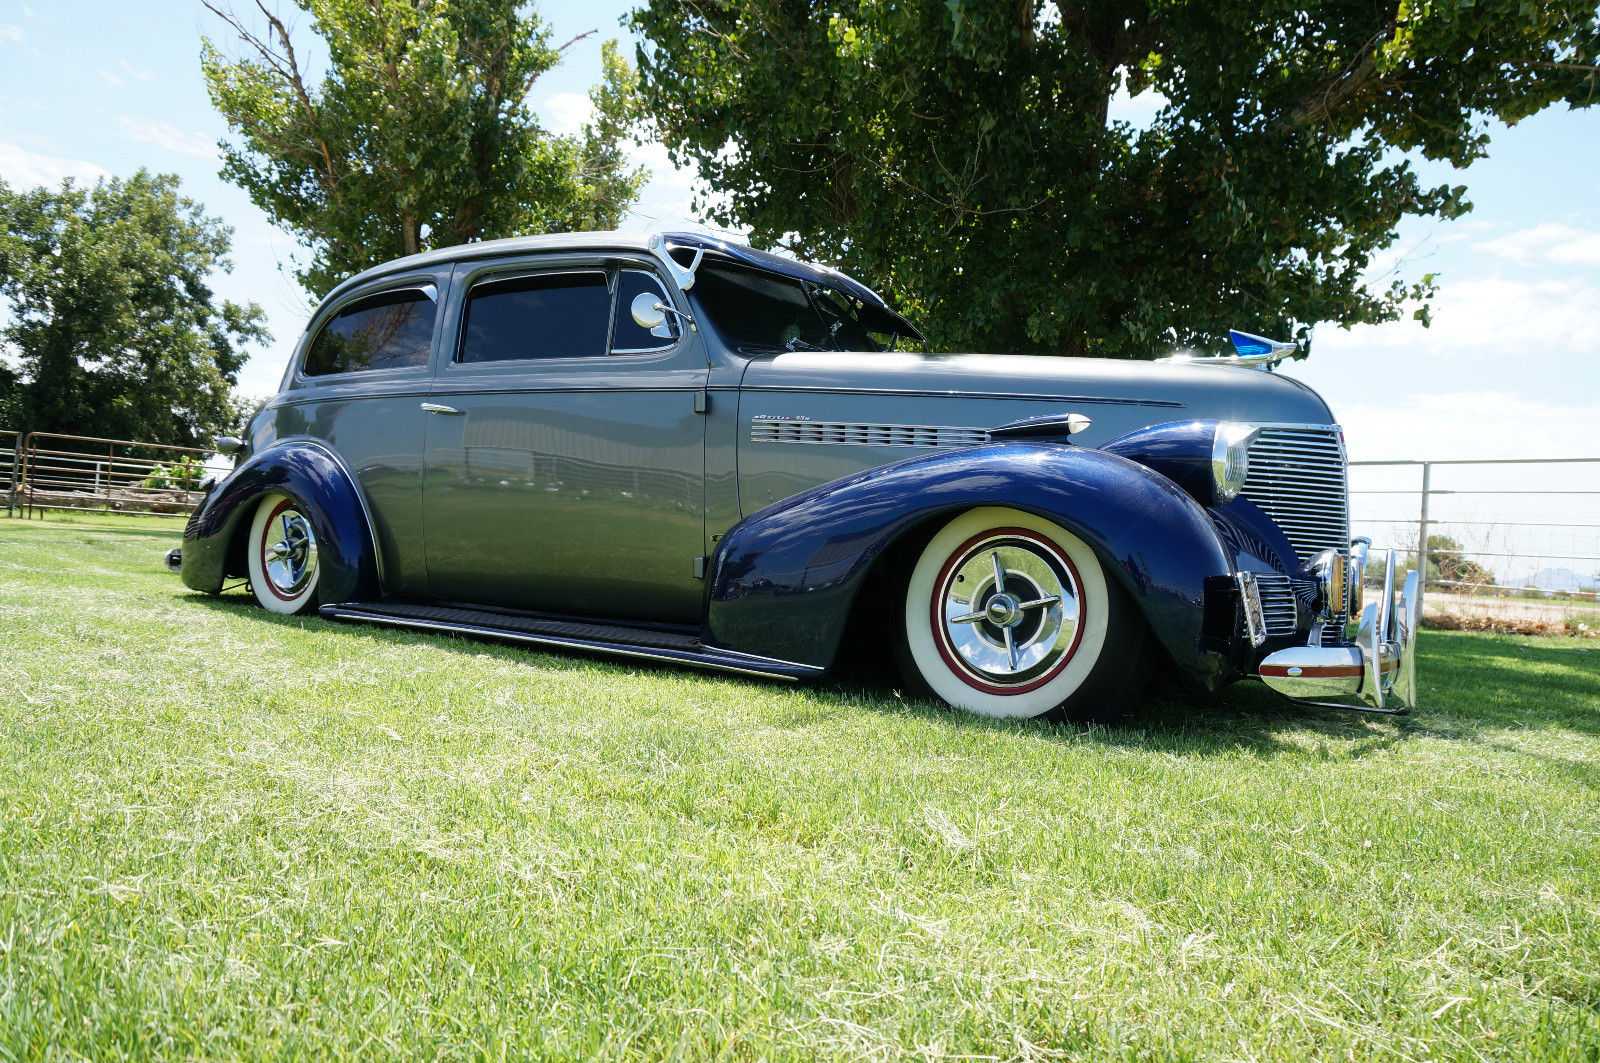 1939 chevy master deluxe 2 door sedan kustom bomb low for 1939 chevy 2 door sedan